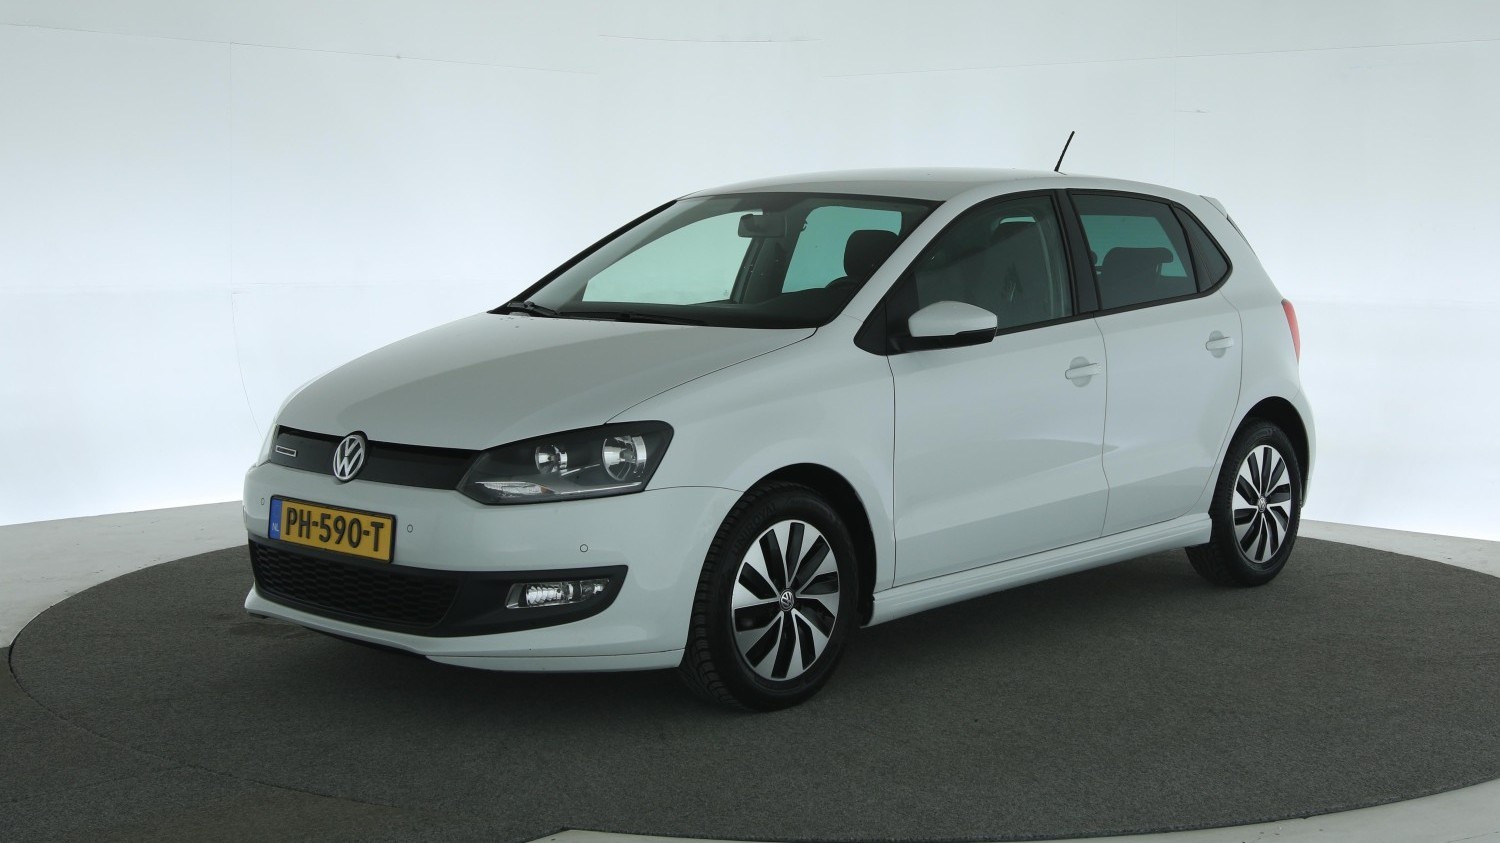 Volkswagen Polo Hatchback 2017 PH-590-T 1